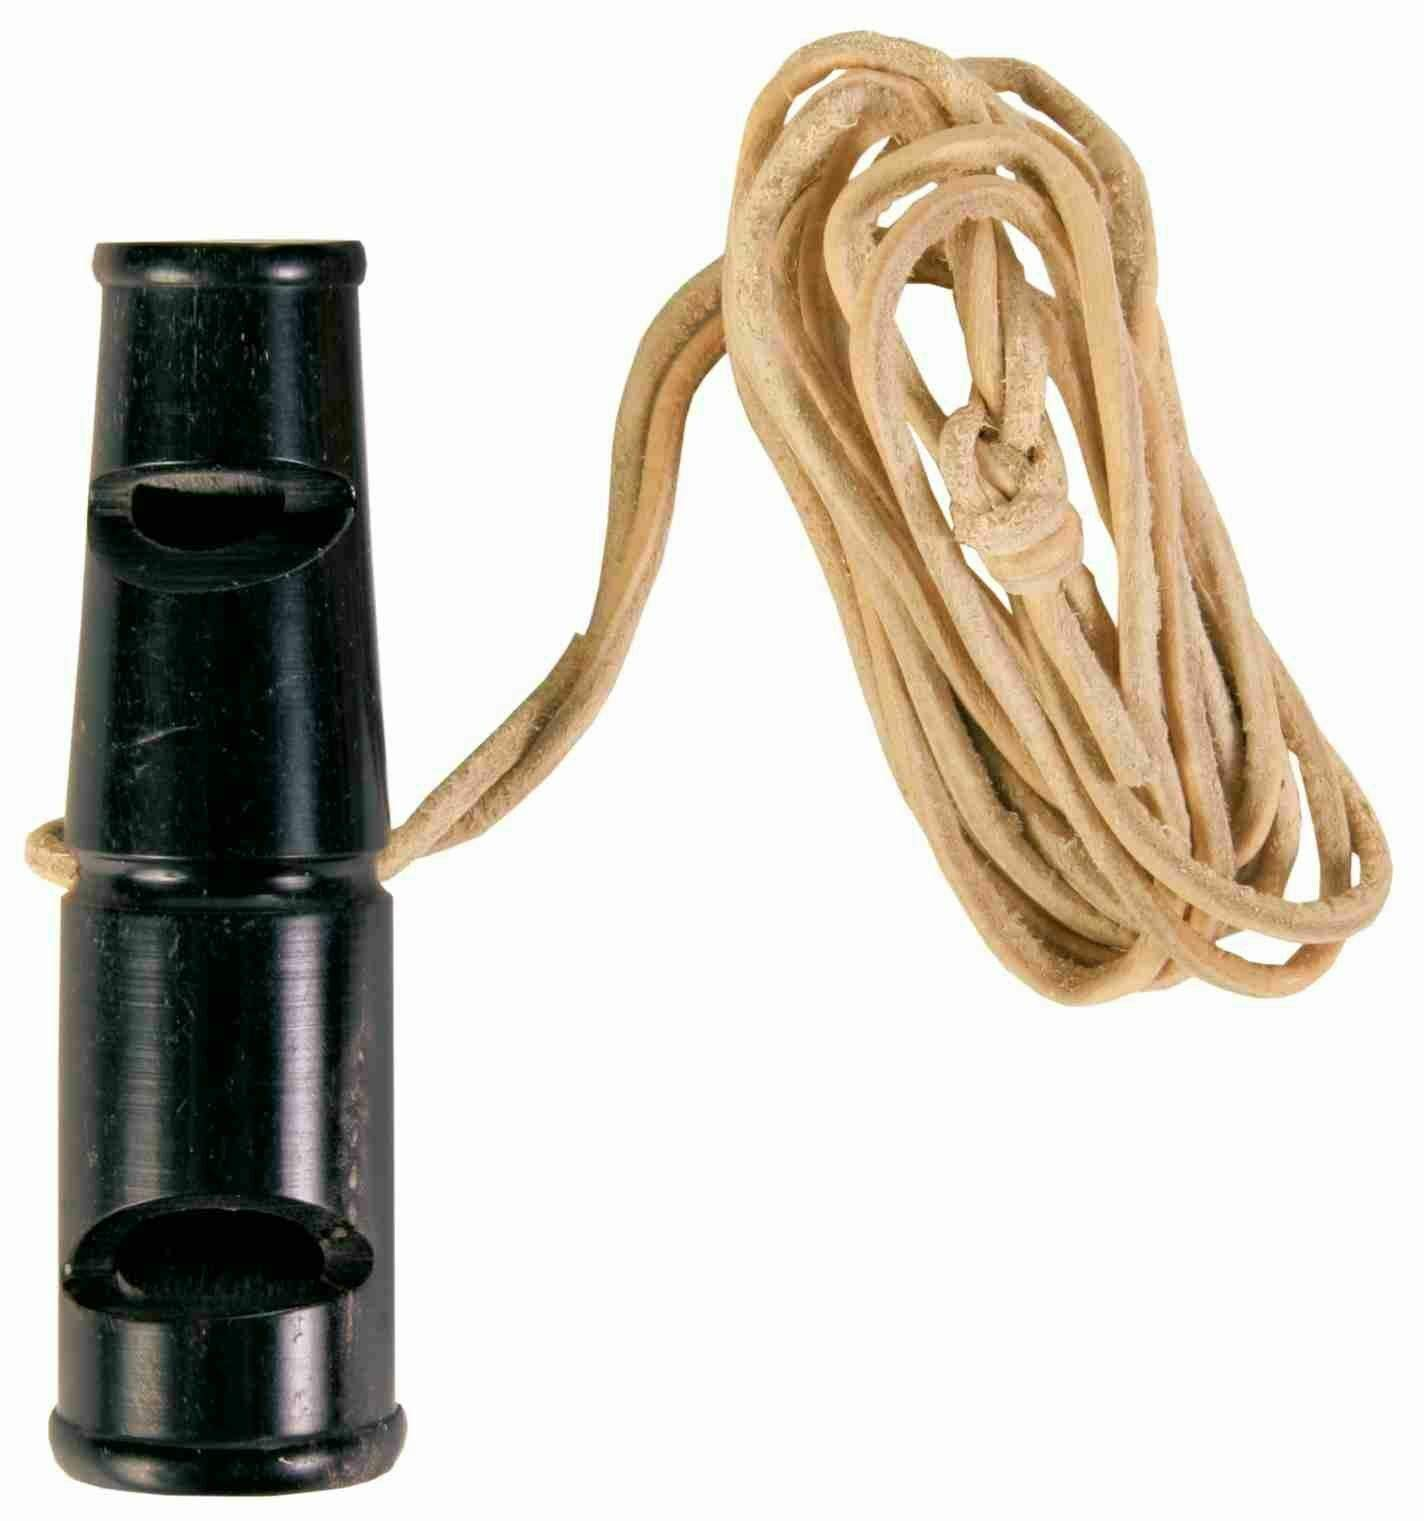 Buffalo Horn Whistle, 6 cm. Two-Tone: Whistle and Trill Tone (Ideal for Training and Hunting) by Trixie